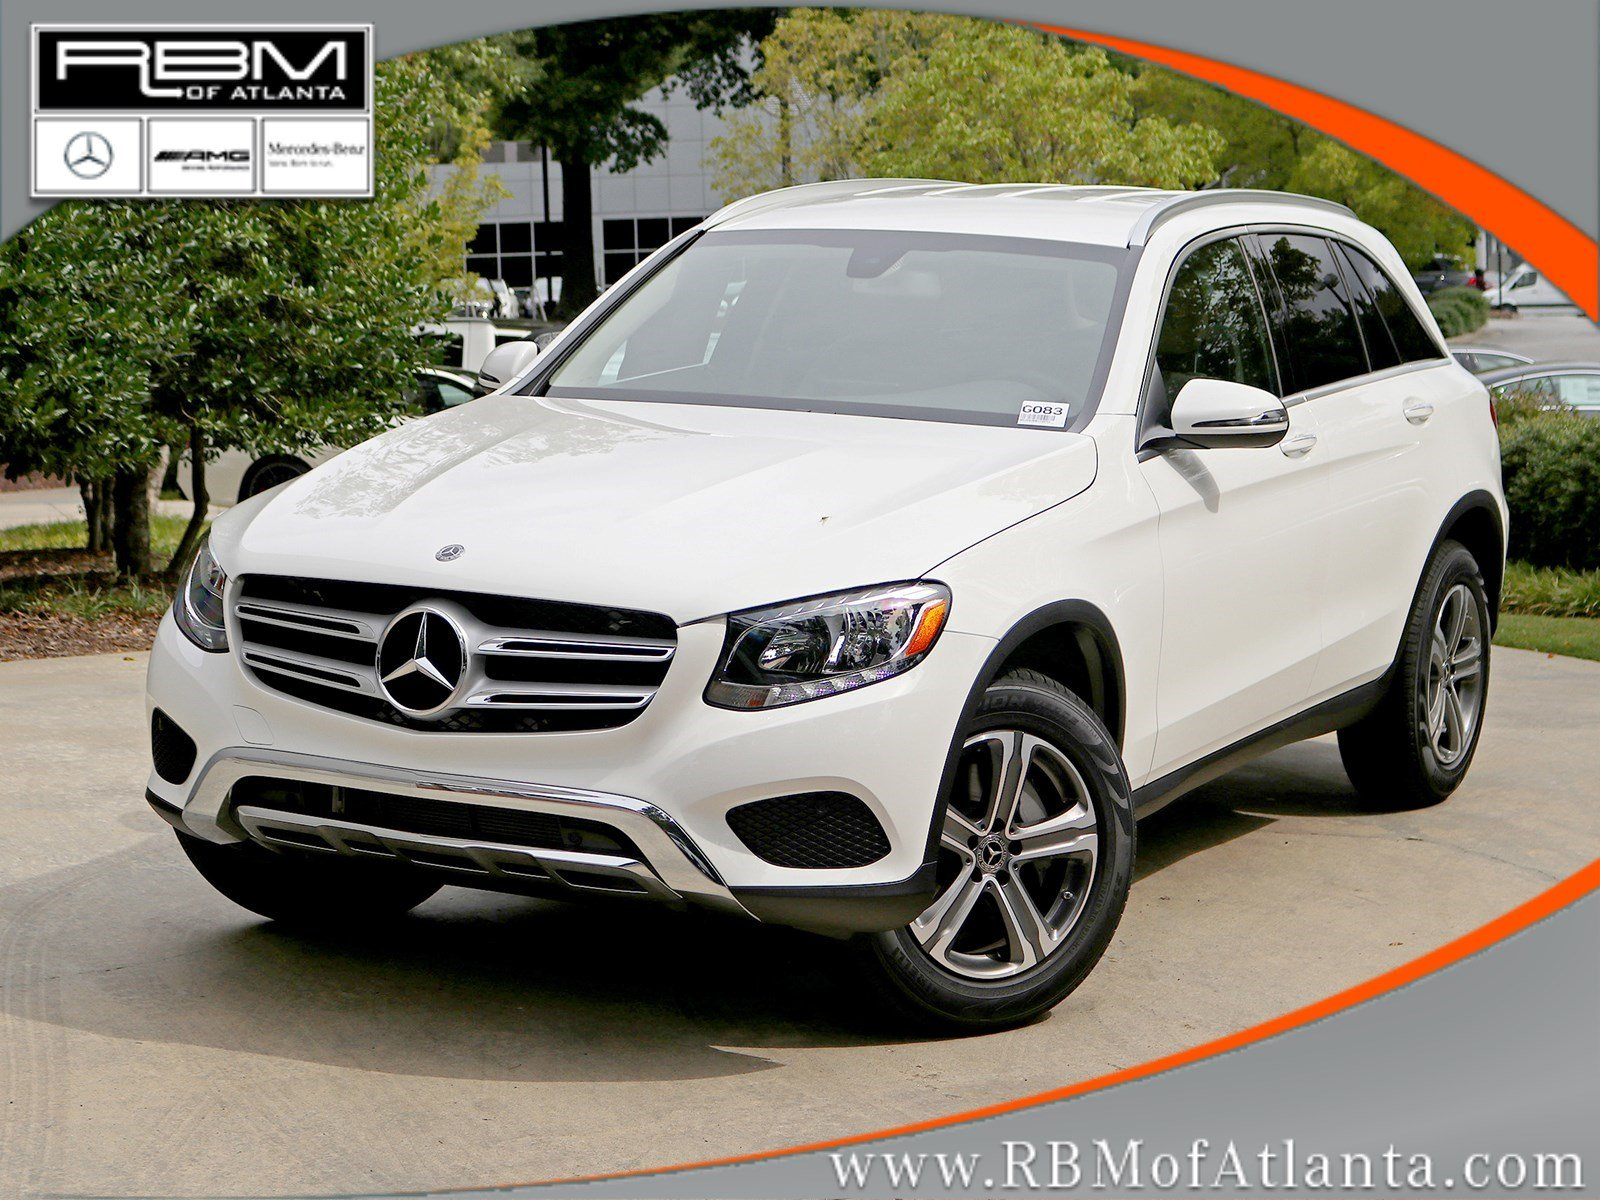 New 2019 Mercedes Benz GLC GLC 300 SUV in Atlanta G083